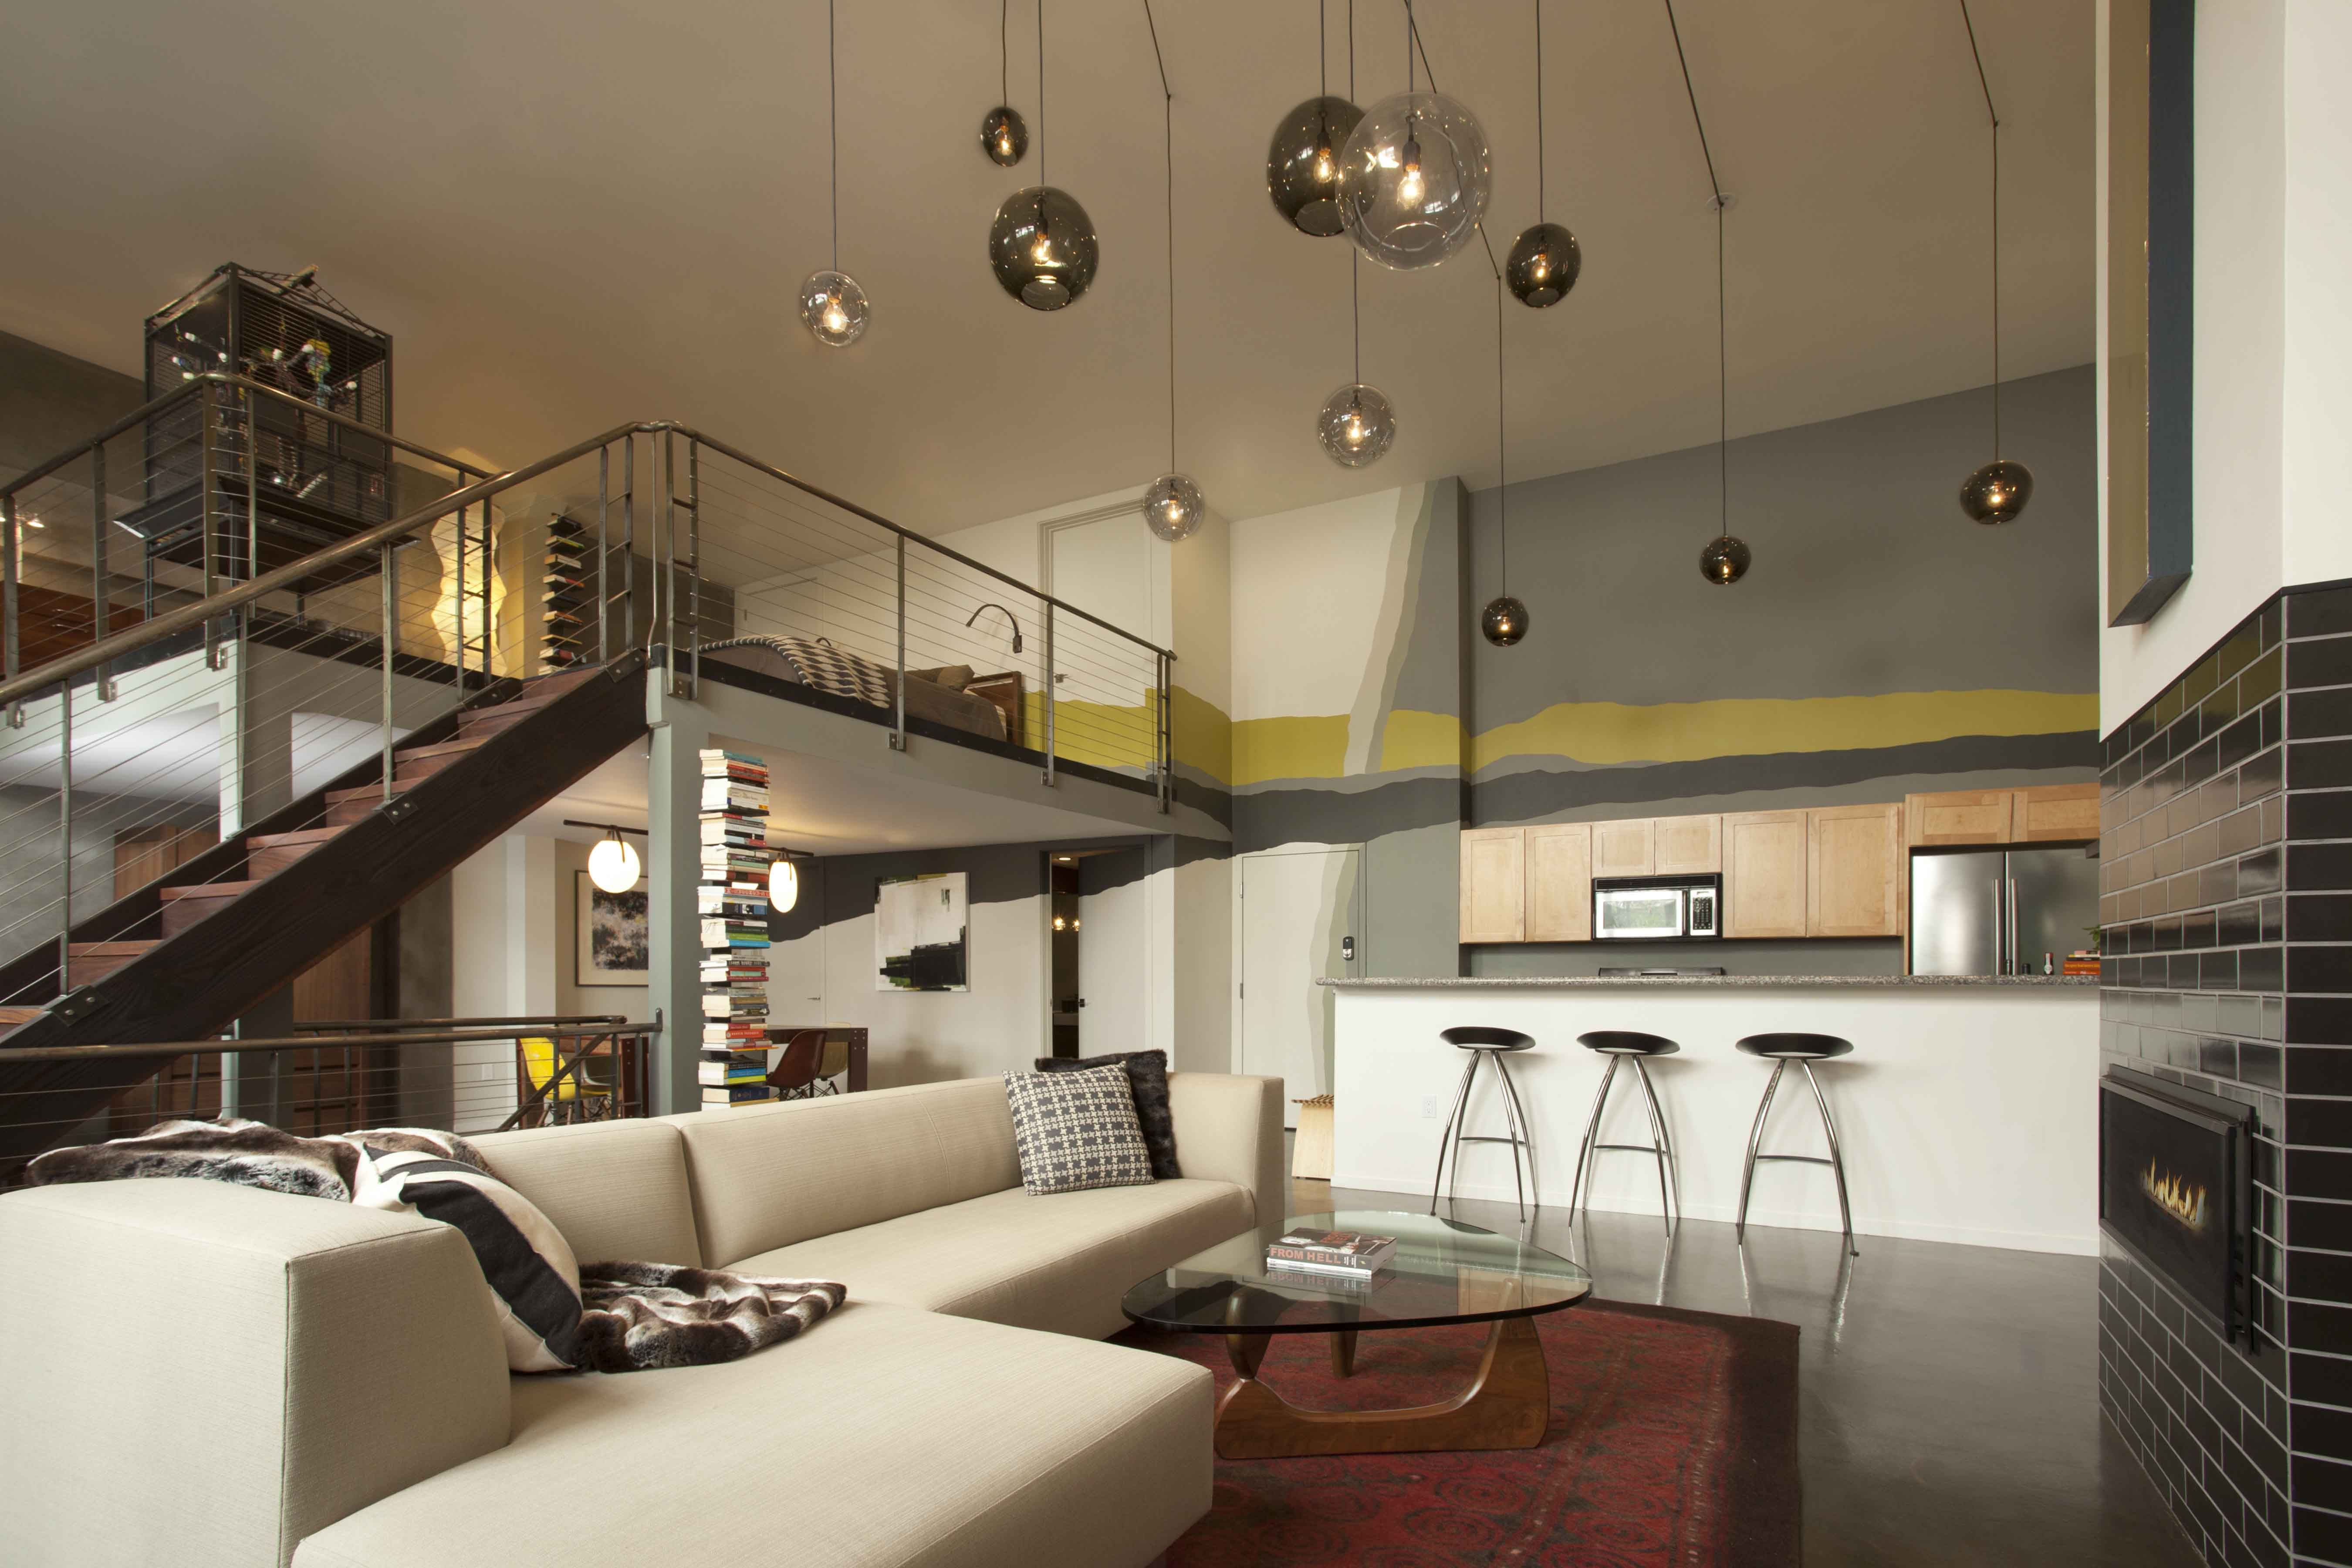 San Francisco Loft With Double Height Ceiling And Pendant Lights Home Loft Design Small Room